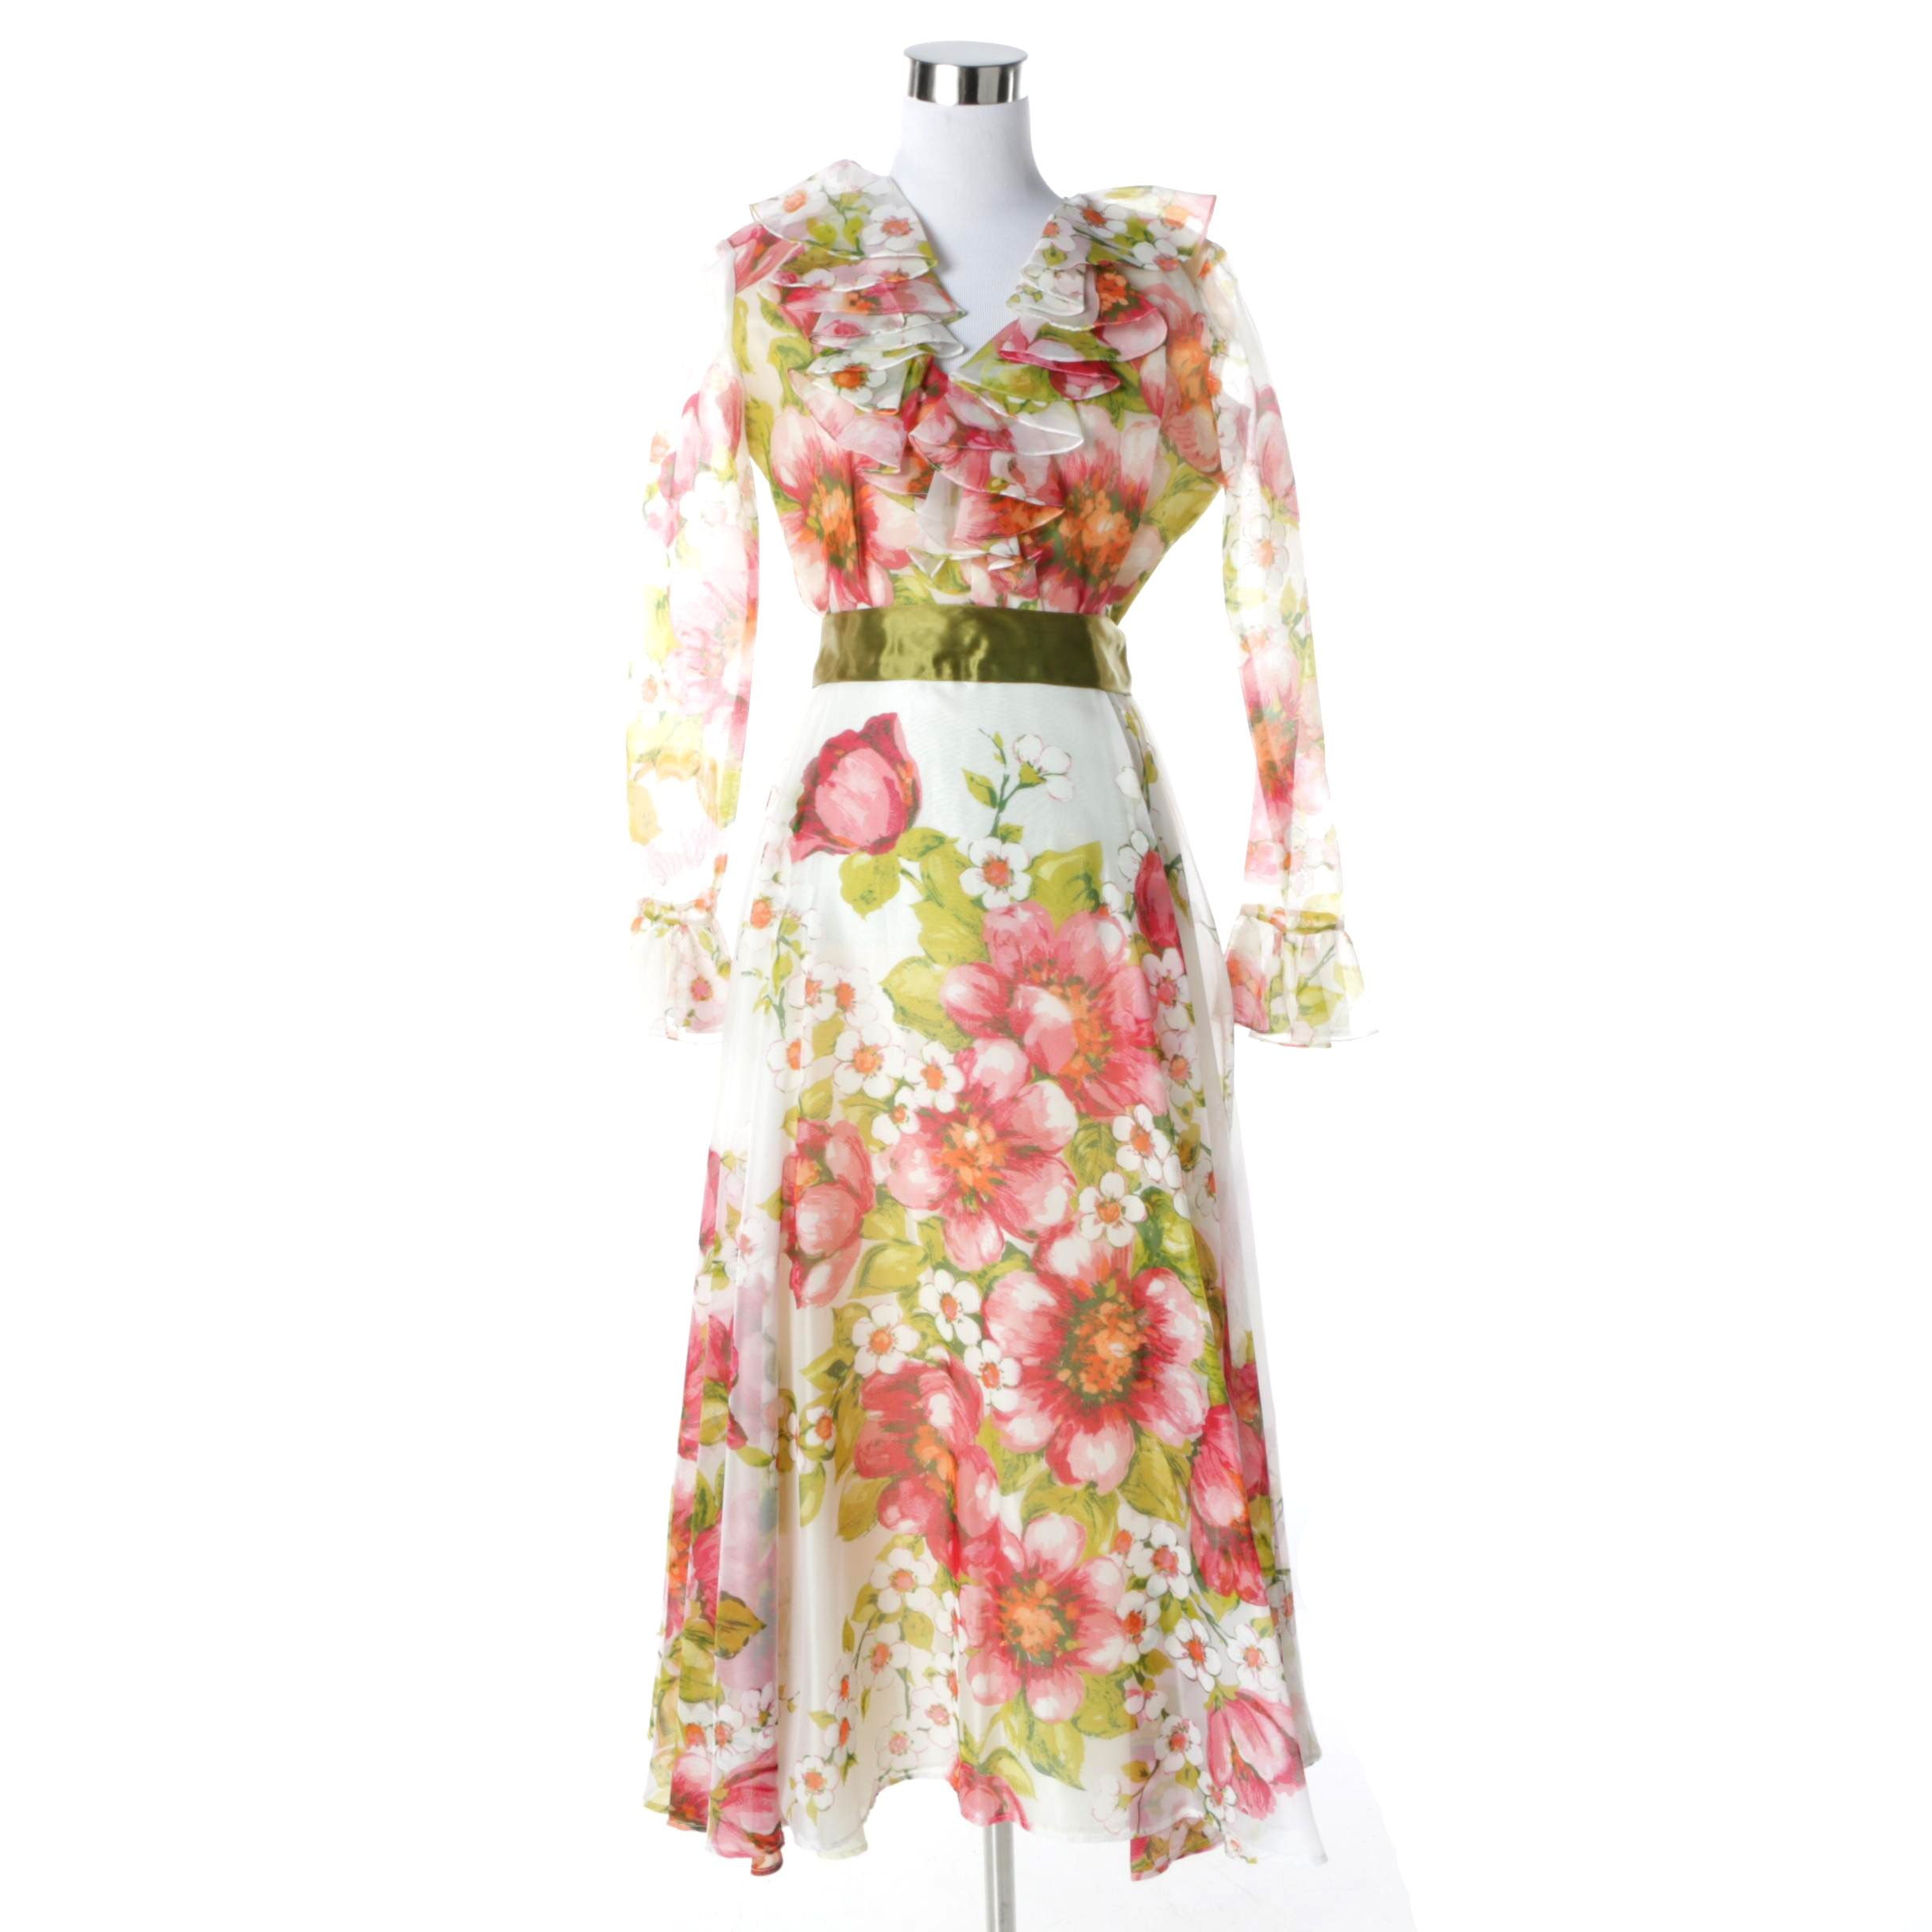 Circa 1970s Vintage Roger Milot for Fred Perlberg Floral Chiffon Dress